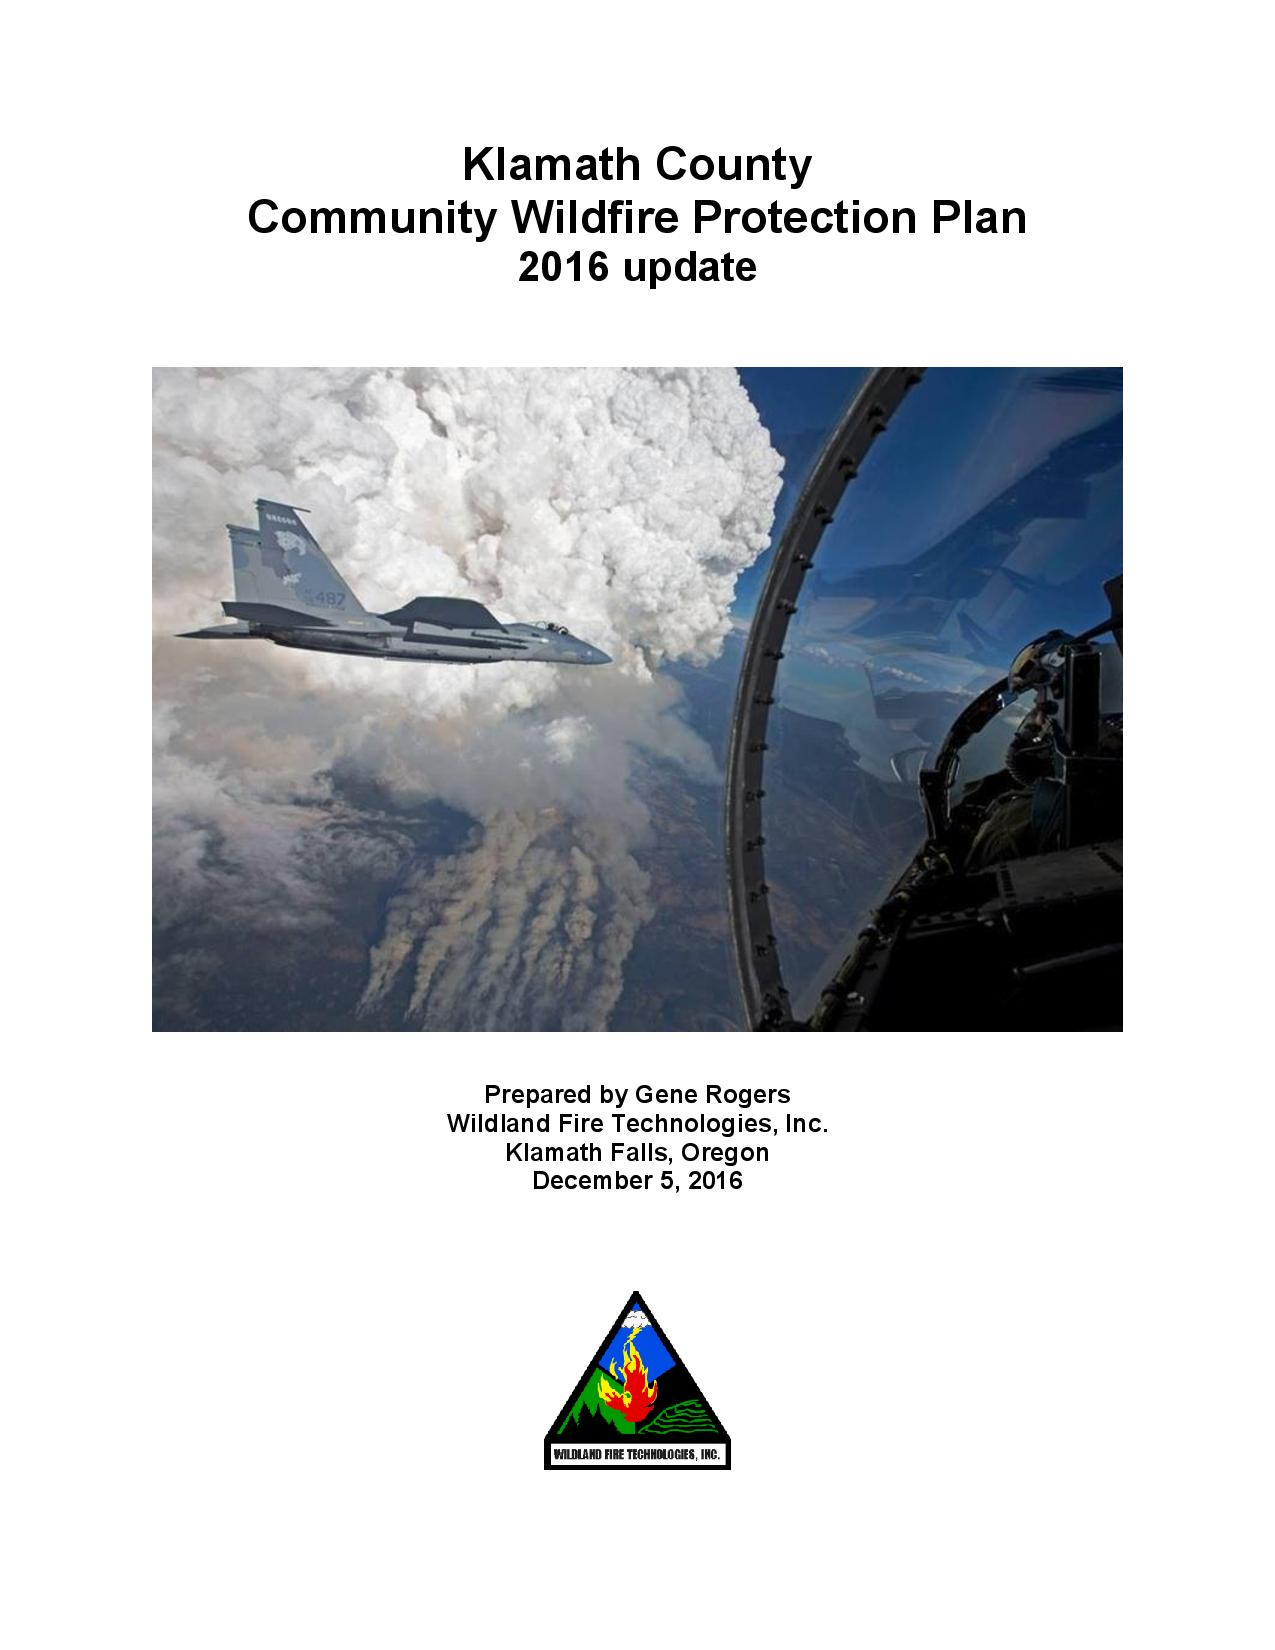 Community Wildfire Protection Plan Cover